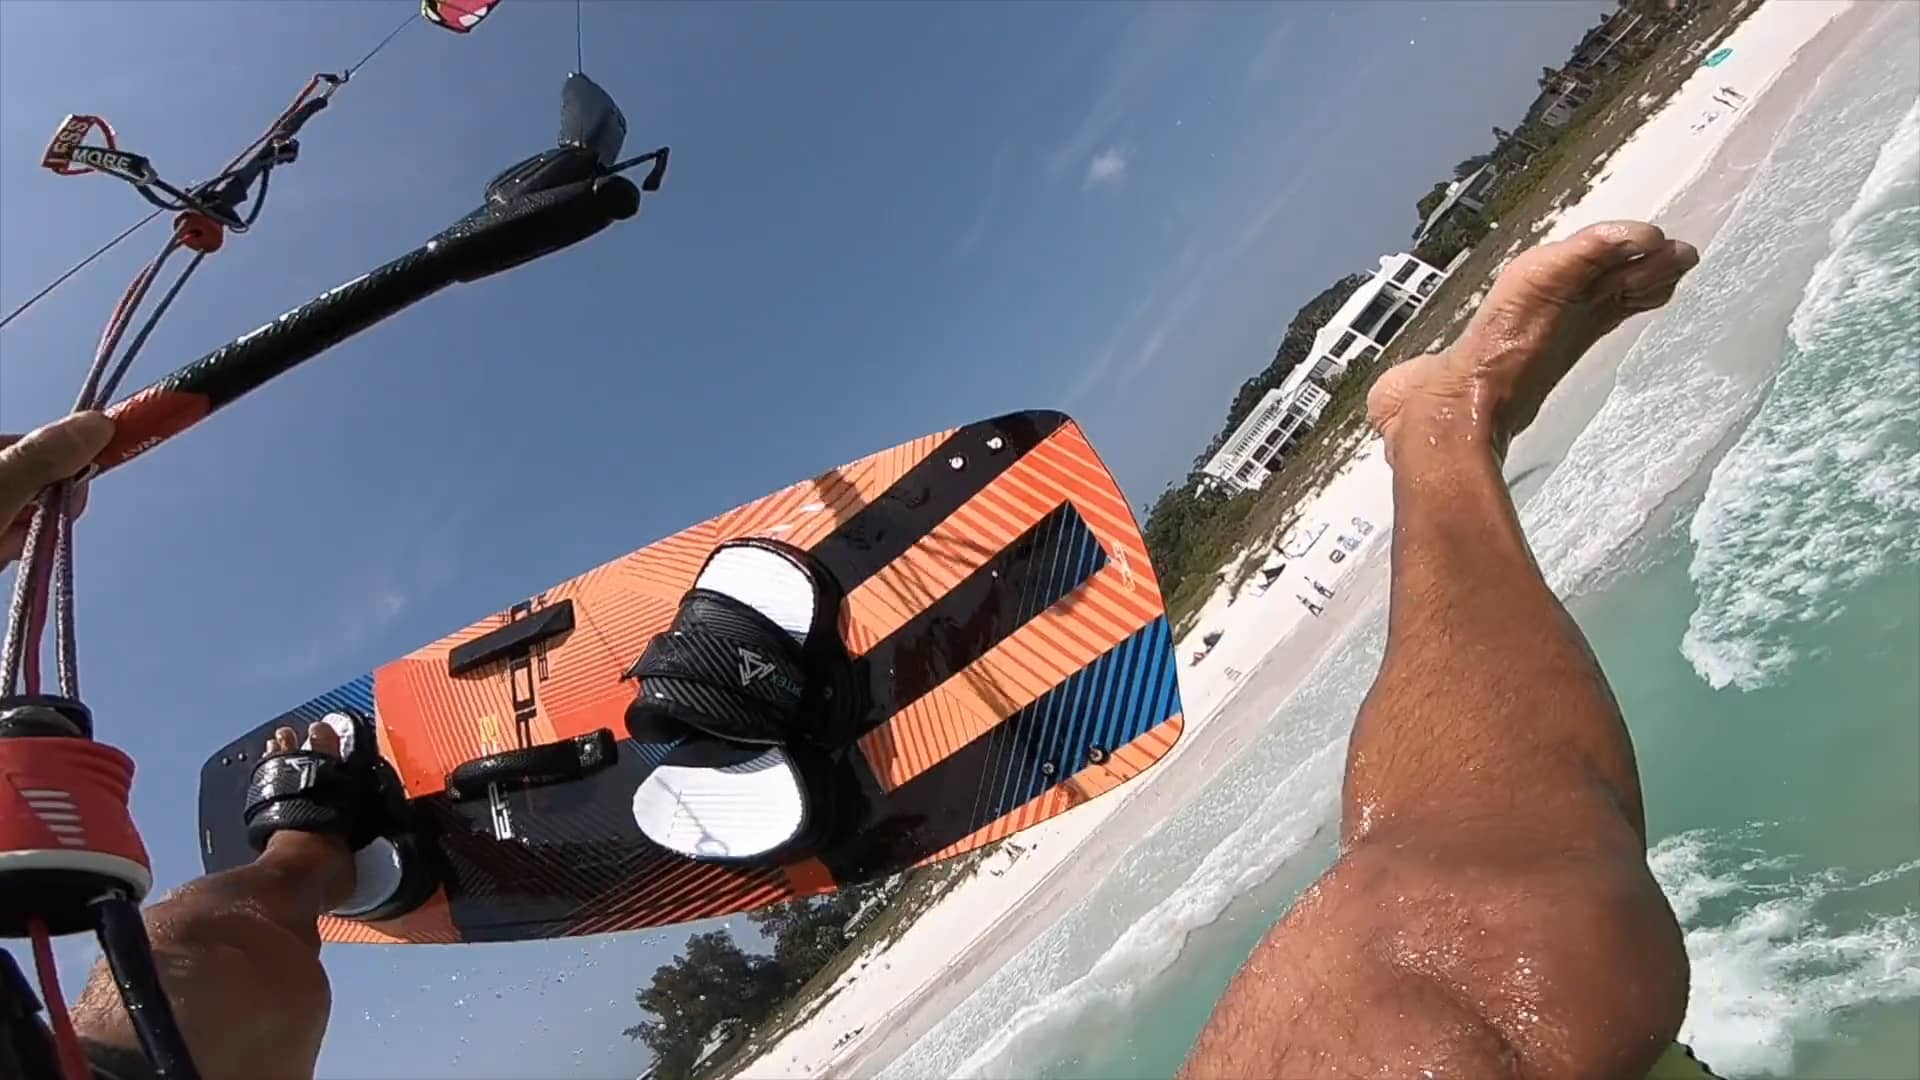 Don't worry. I AM A PROFESSIONAL - with Epic Kites Kiteboarding